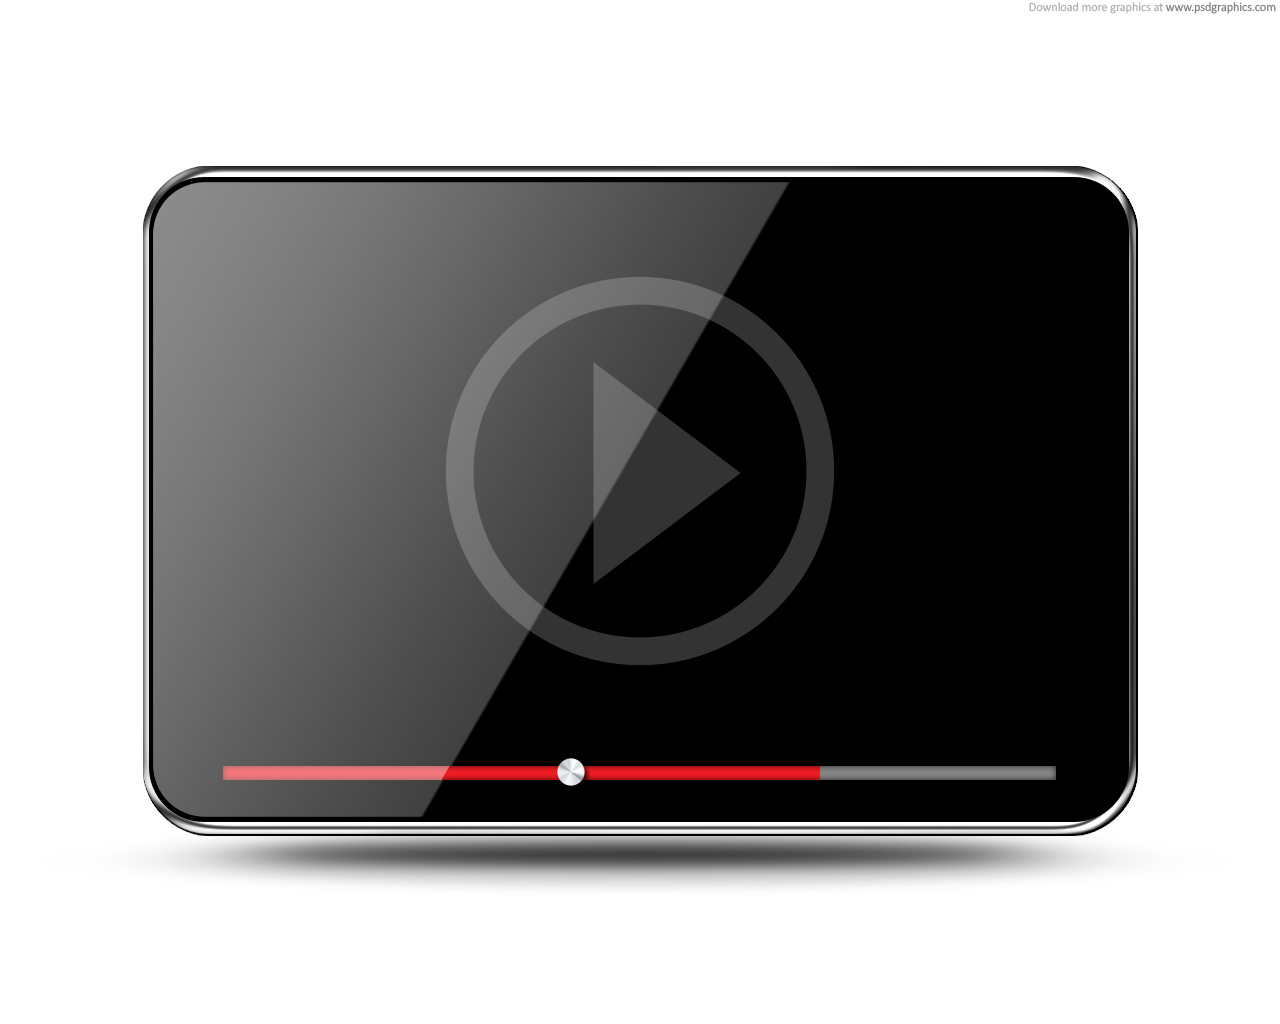 Full size JPG preview: Video player icon